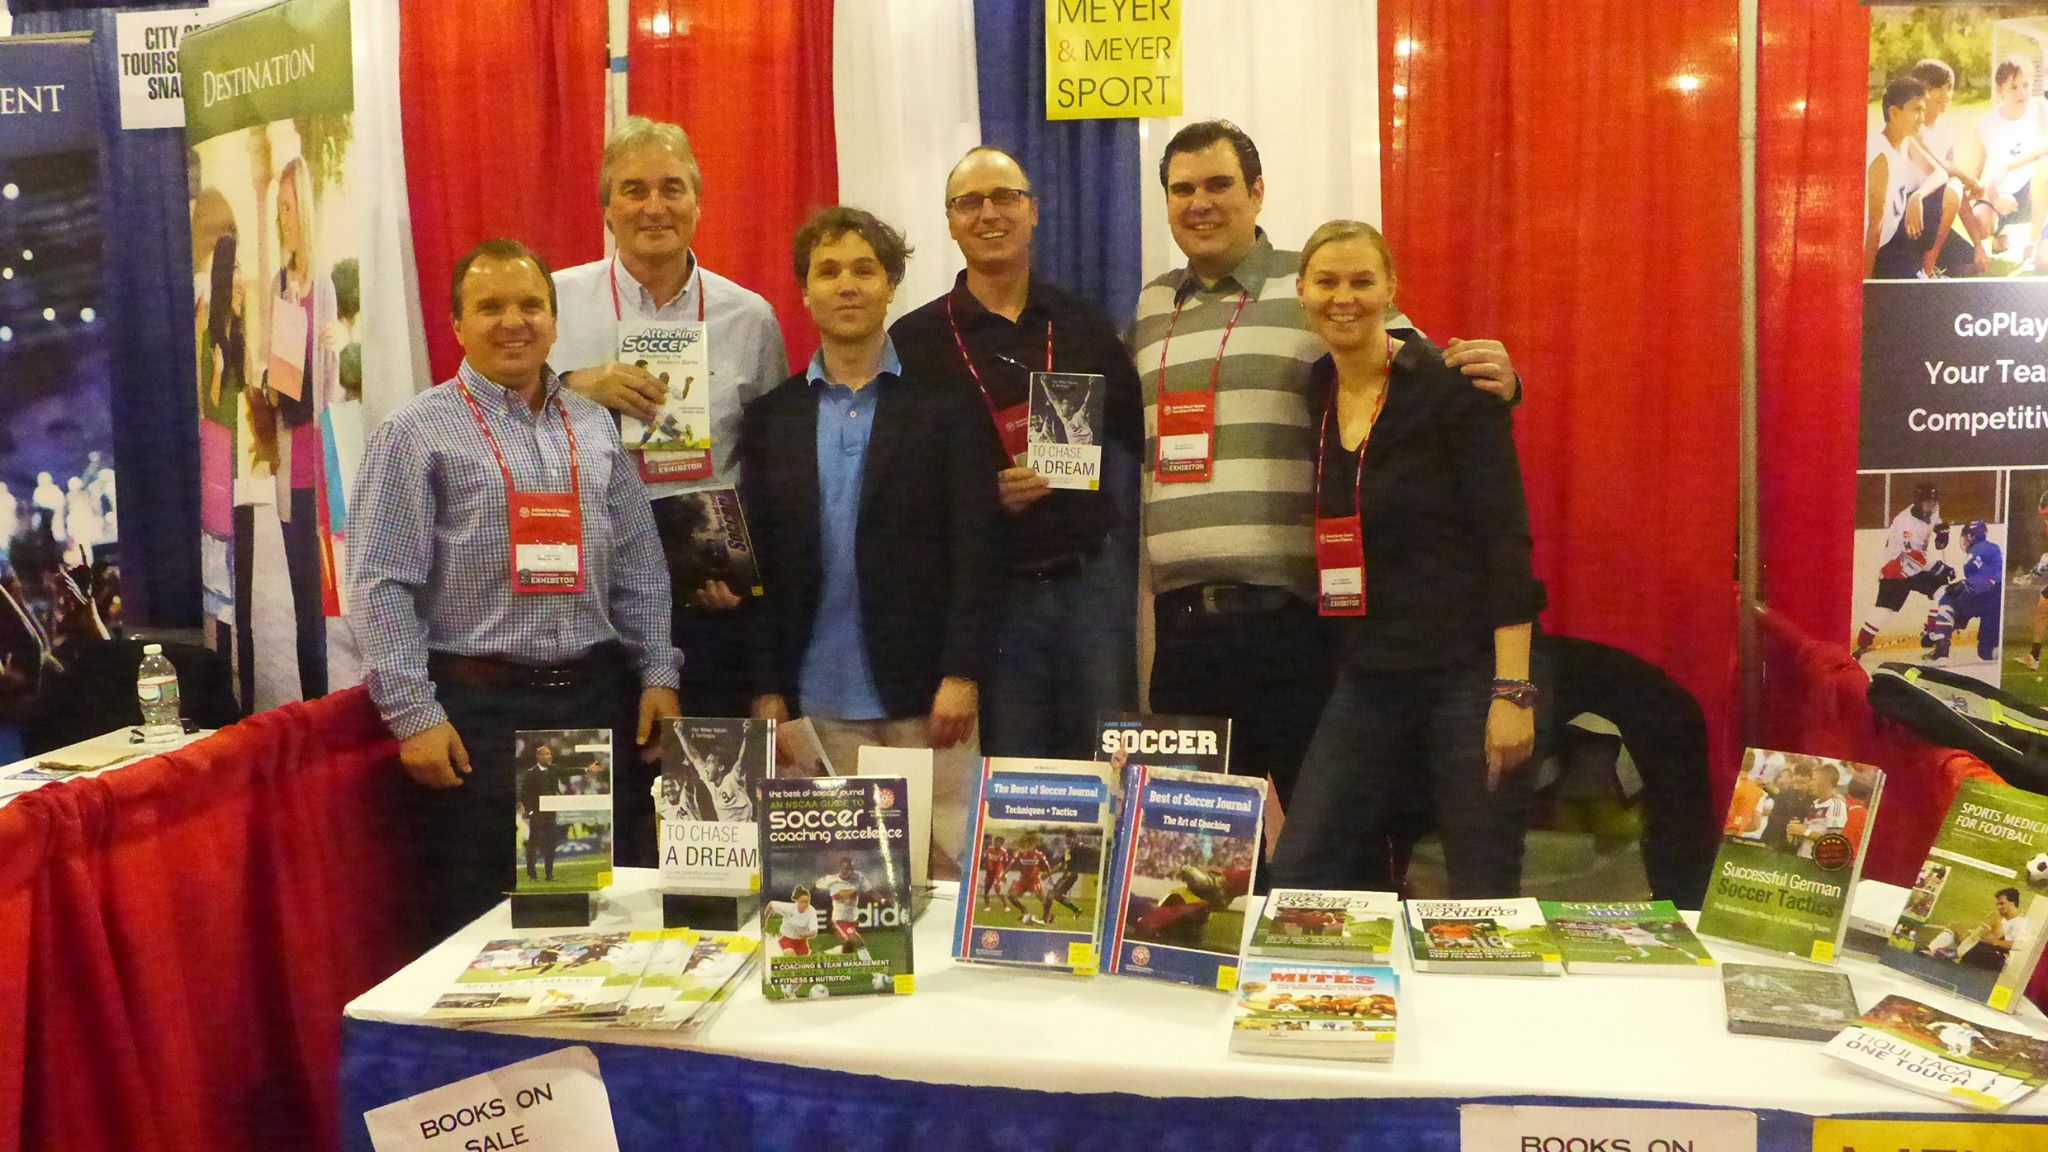 Peter Schreiner at the NSCAA Convention 2015 presention his new book at the booth of Meyer&Meyer publisher